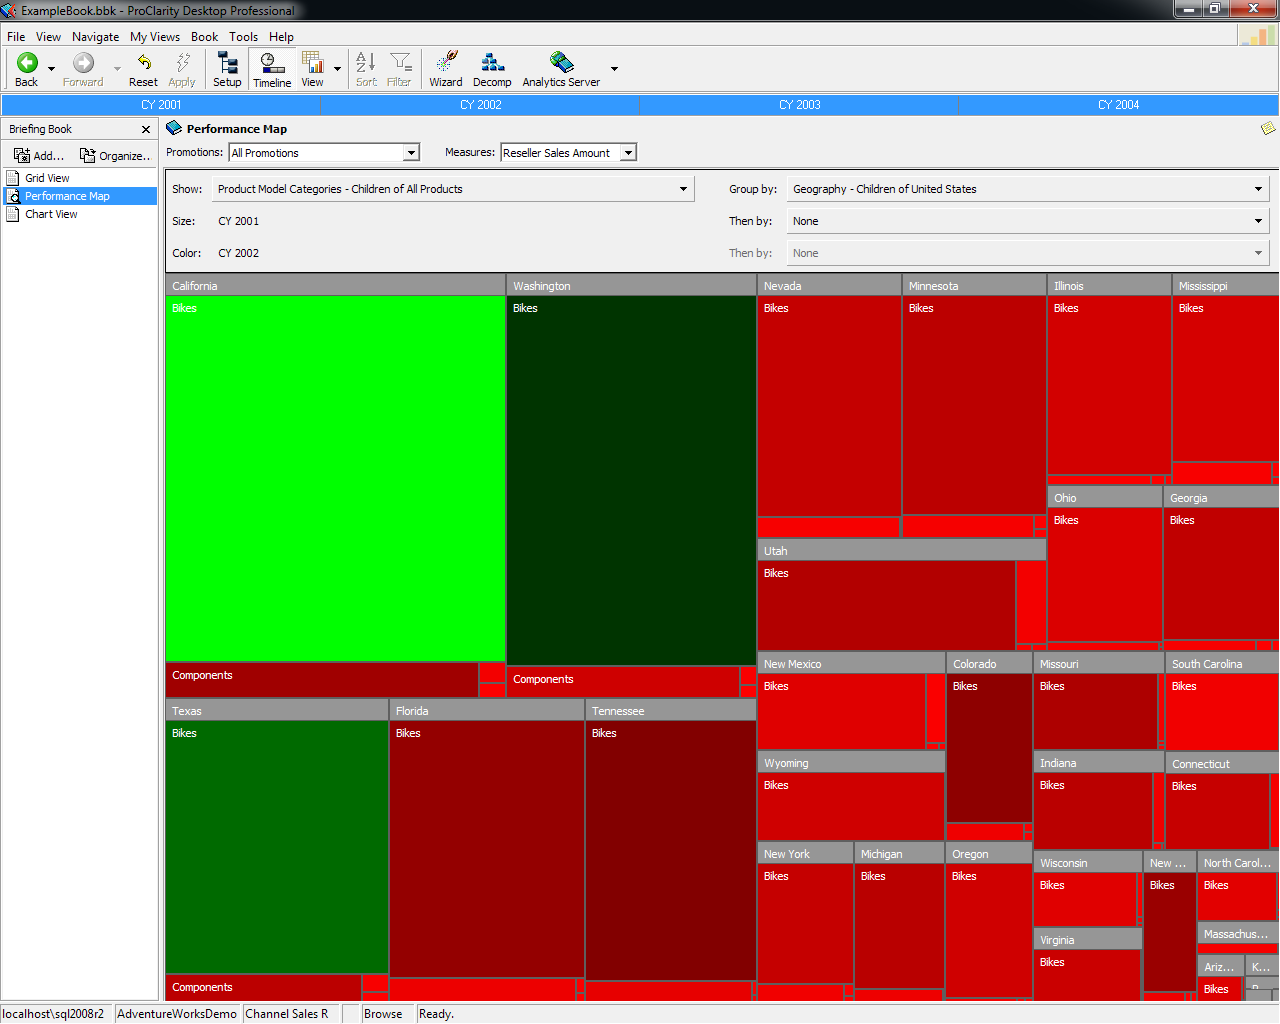 Microsoft ProClarity Desktop Professional 6.3 Performance Map (2013)